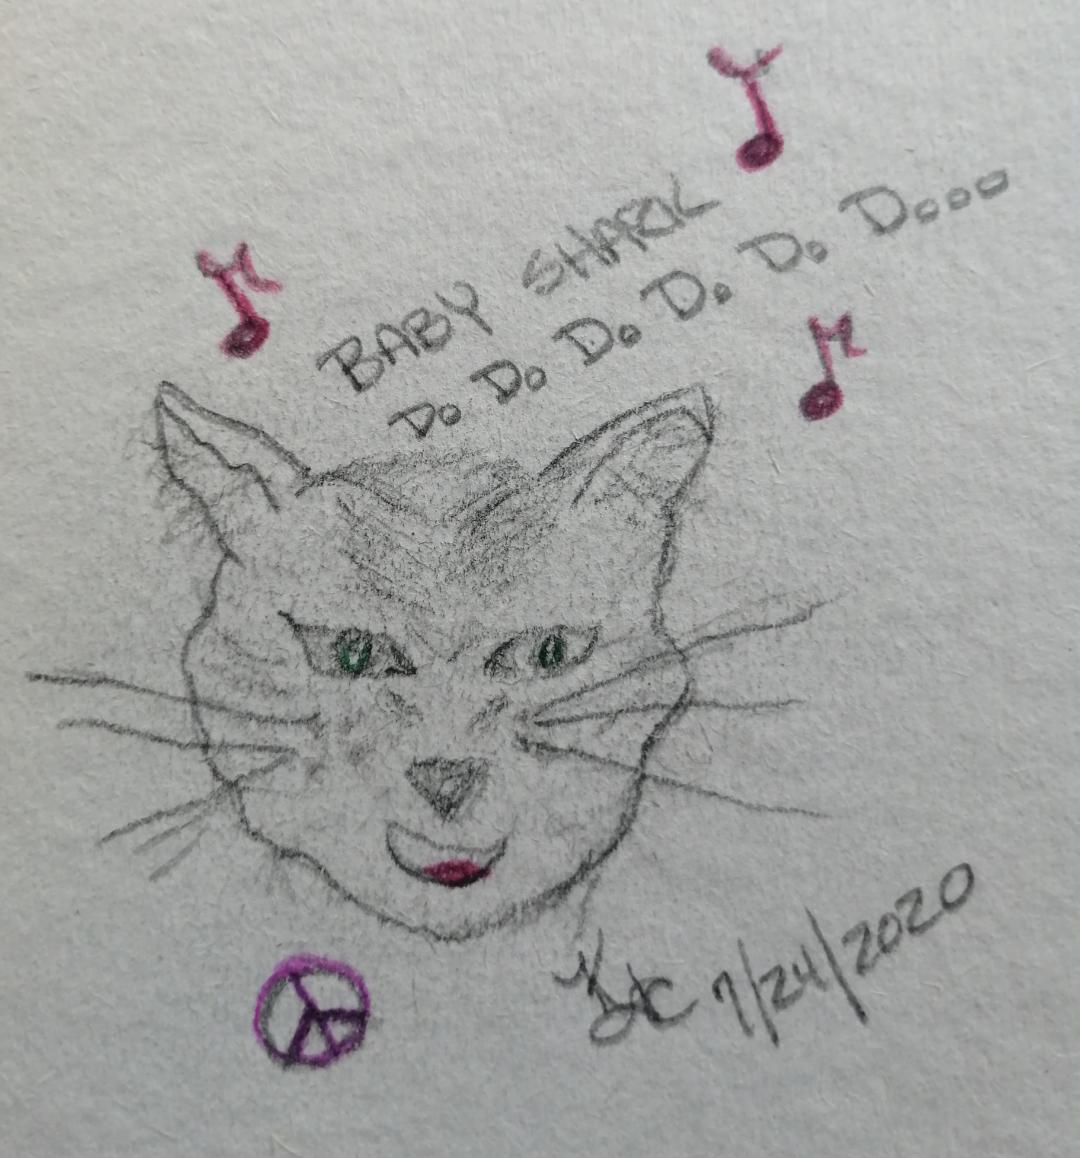 My Cat Sings The Baby Shark Song ~ a short poem by Katrina Curtiss 7/24/2020